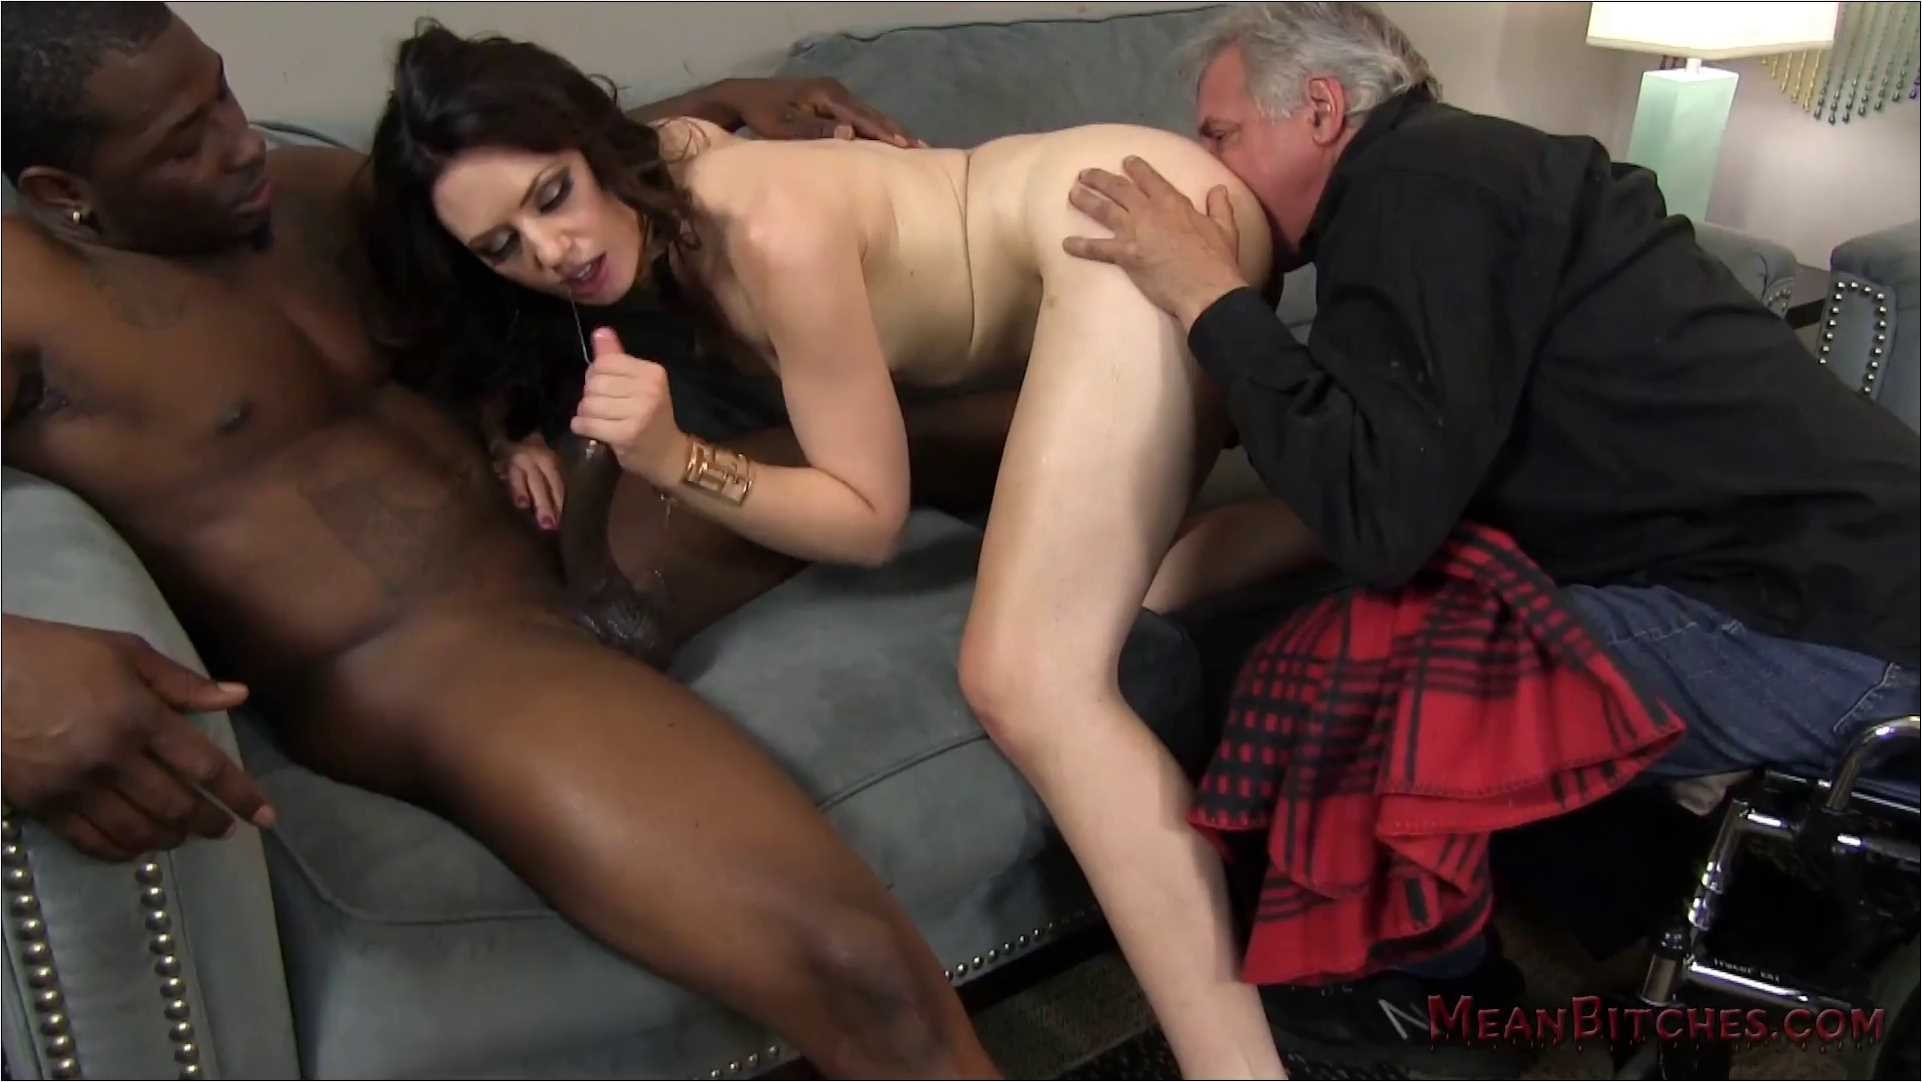 Sarah Shevon In Scene: MEANBITCHES - Sarah Shevon - Cuckold - MEANWORLD - FULL HD/1080p/MP4